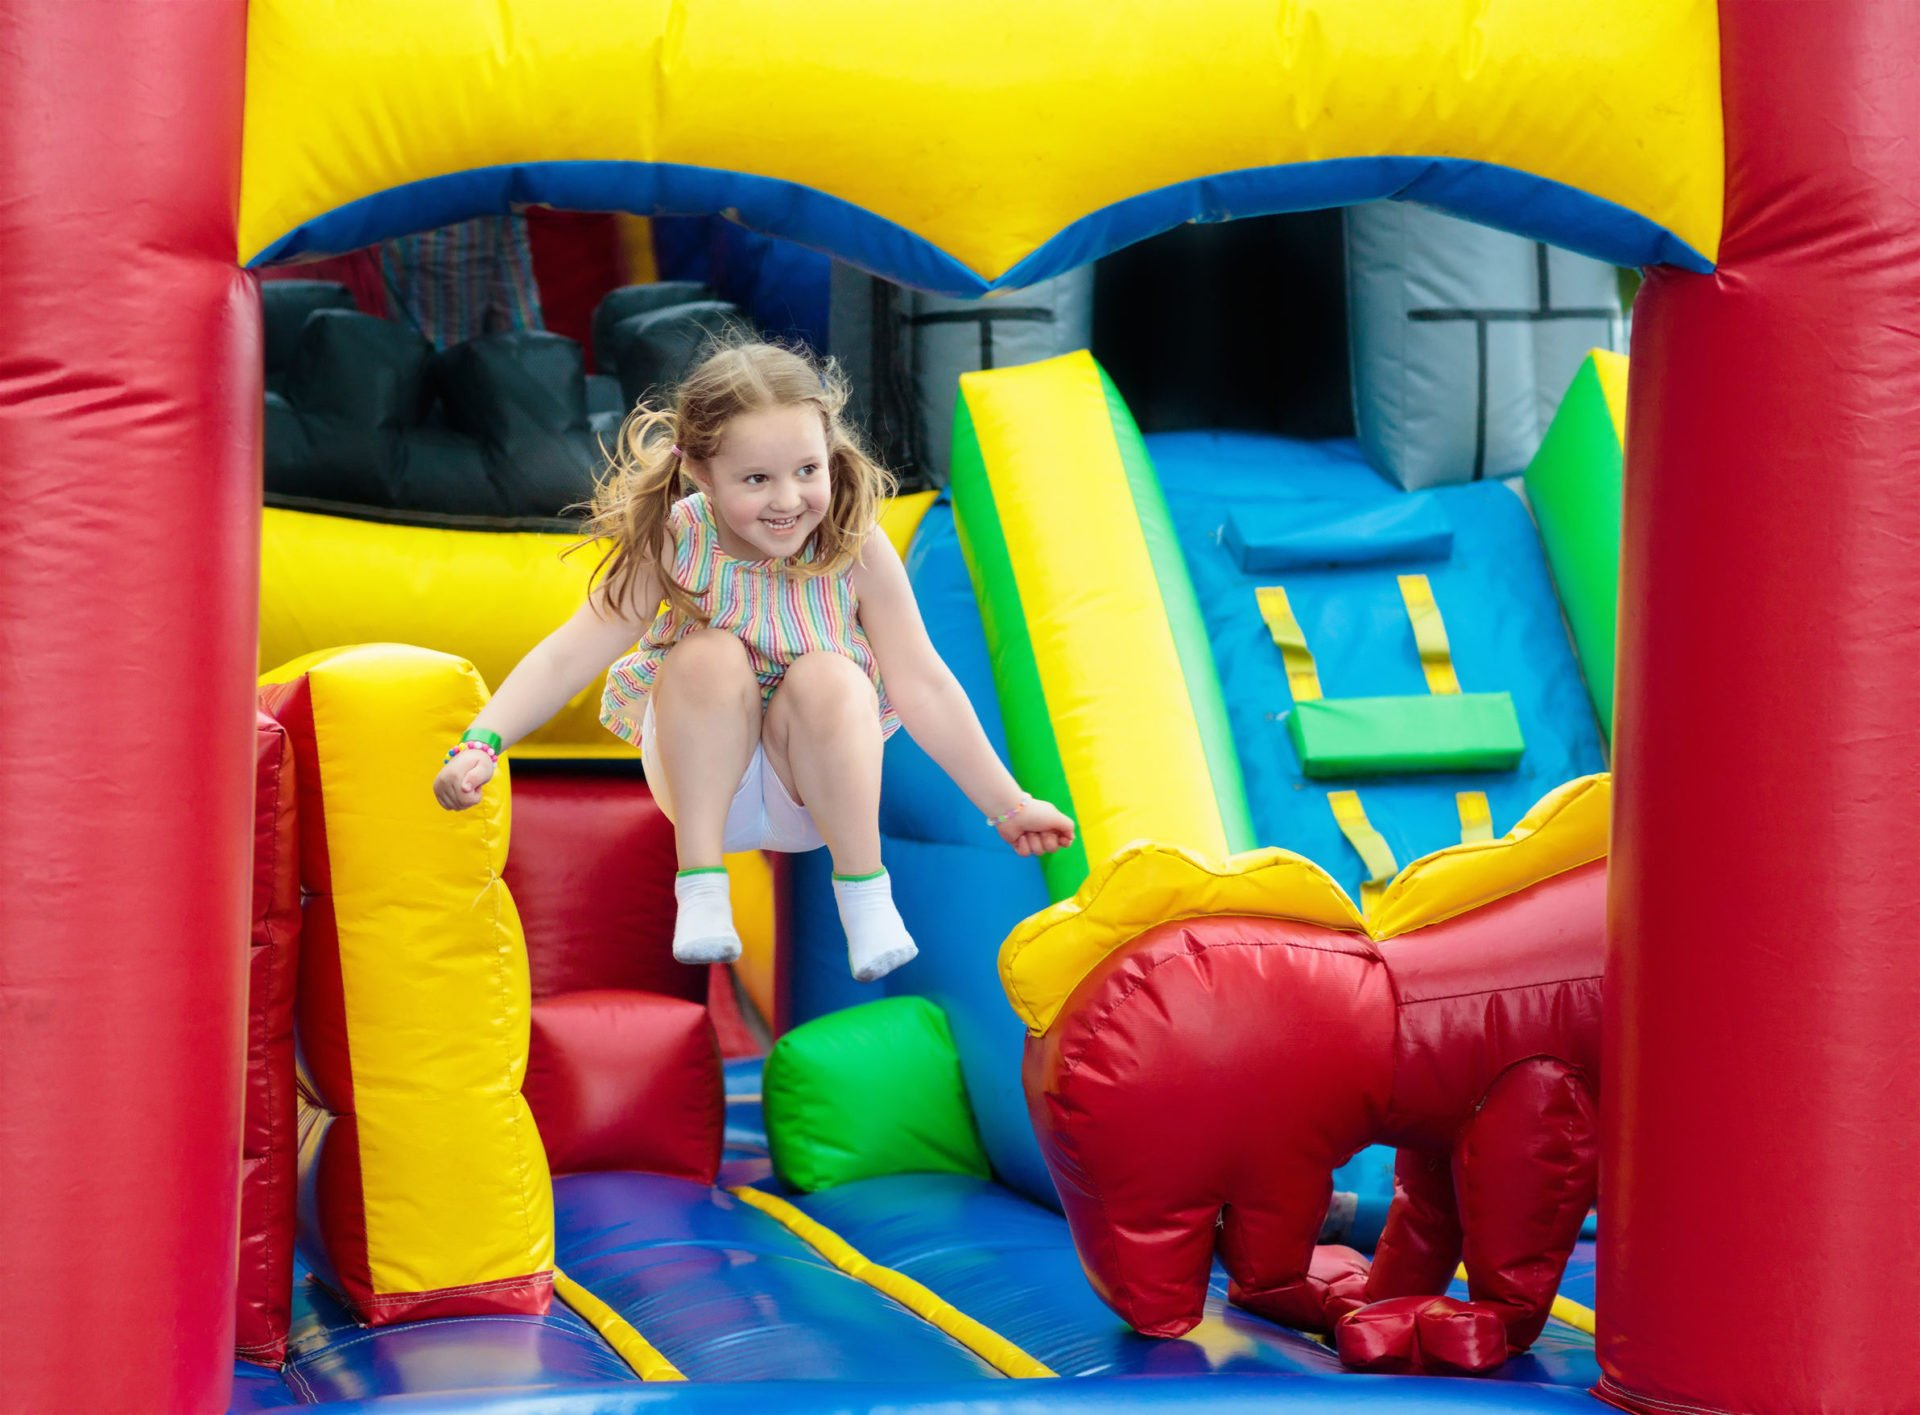 How to Make Money With Inflatable Obstacle Course